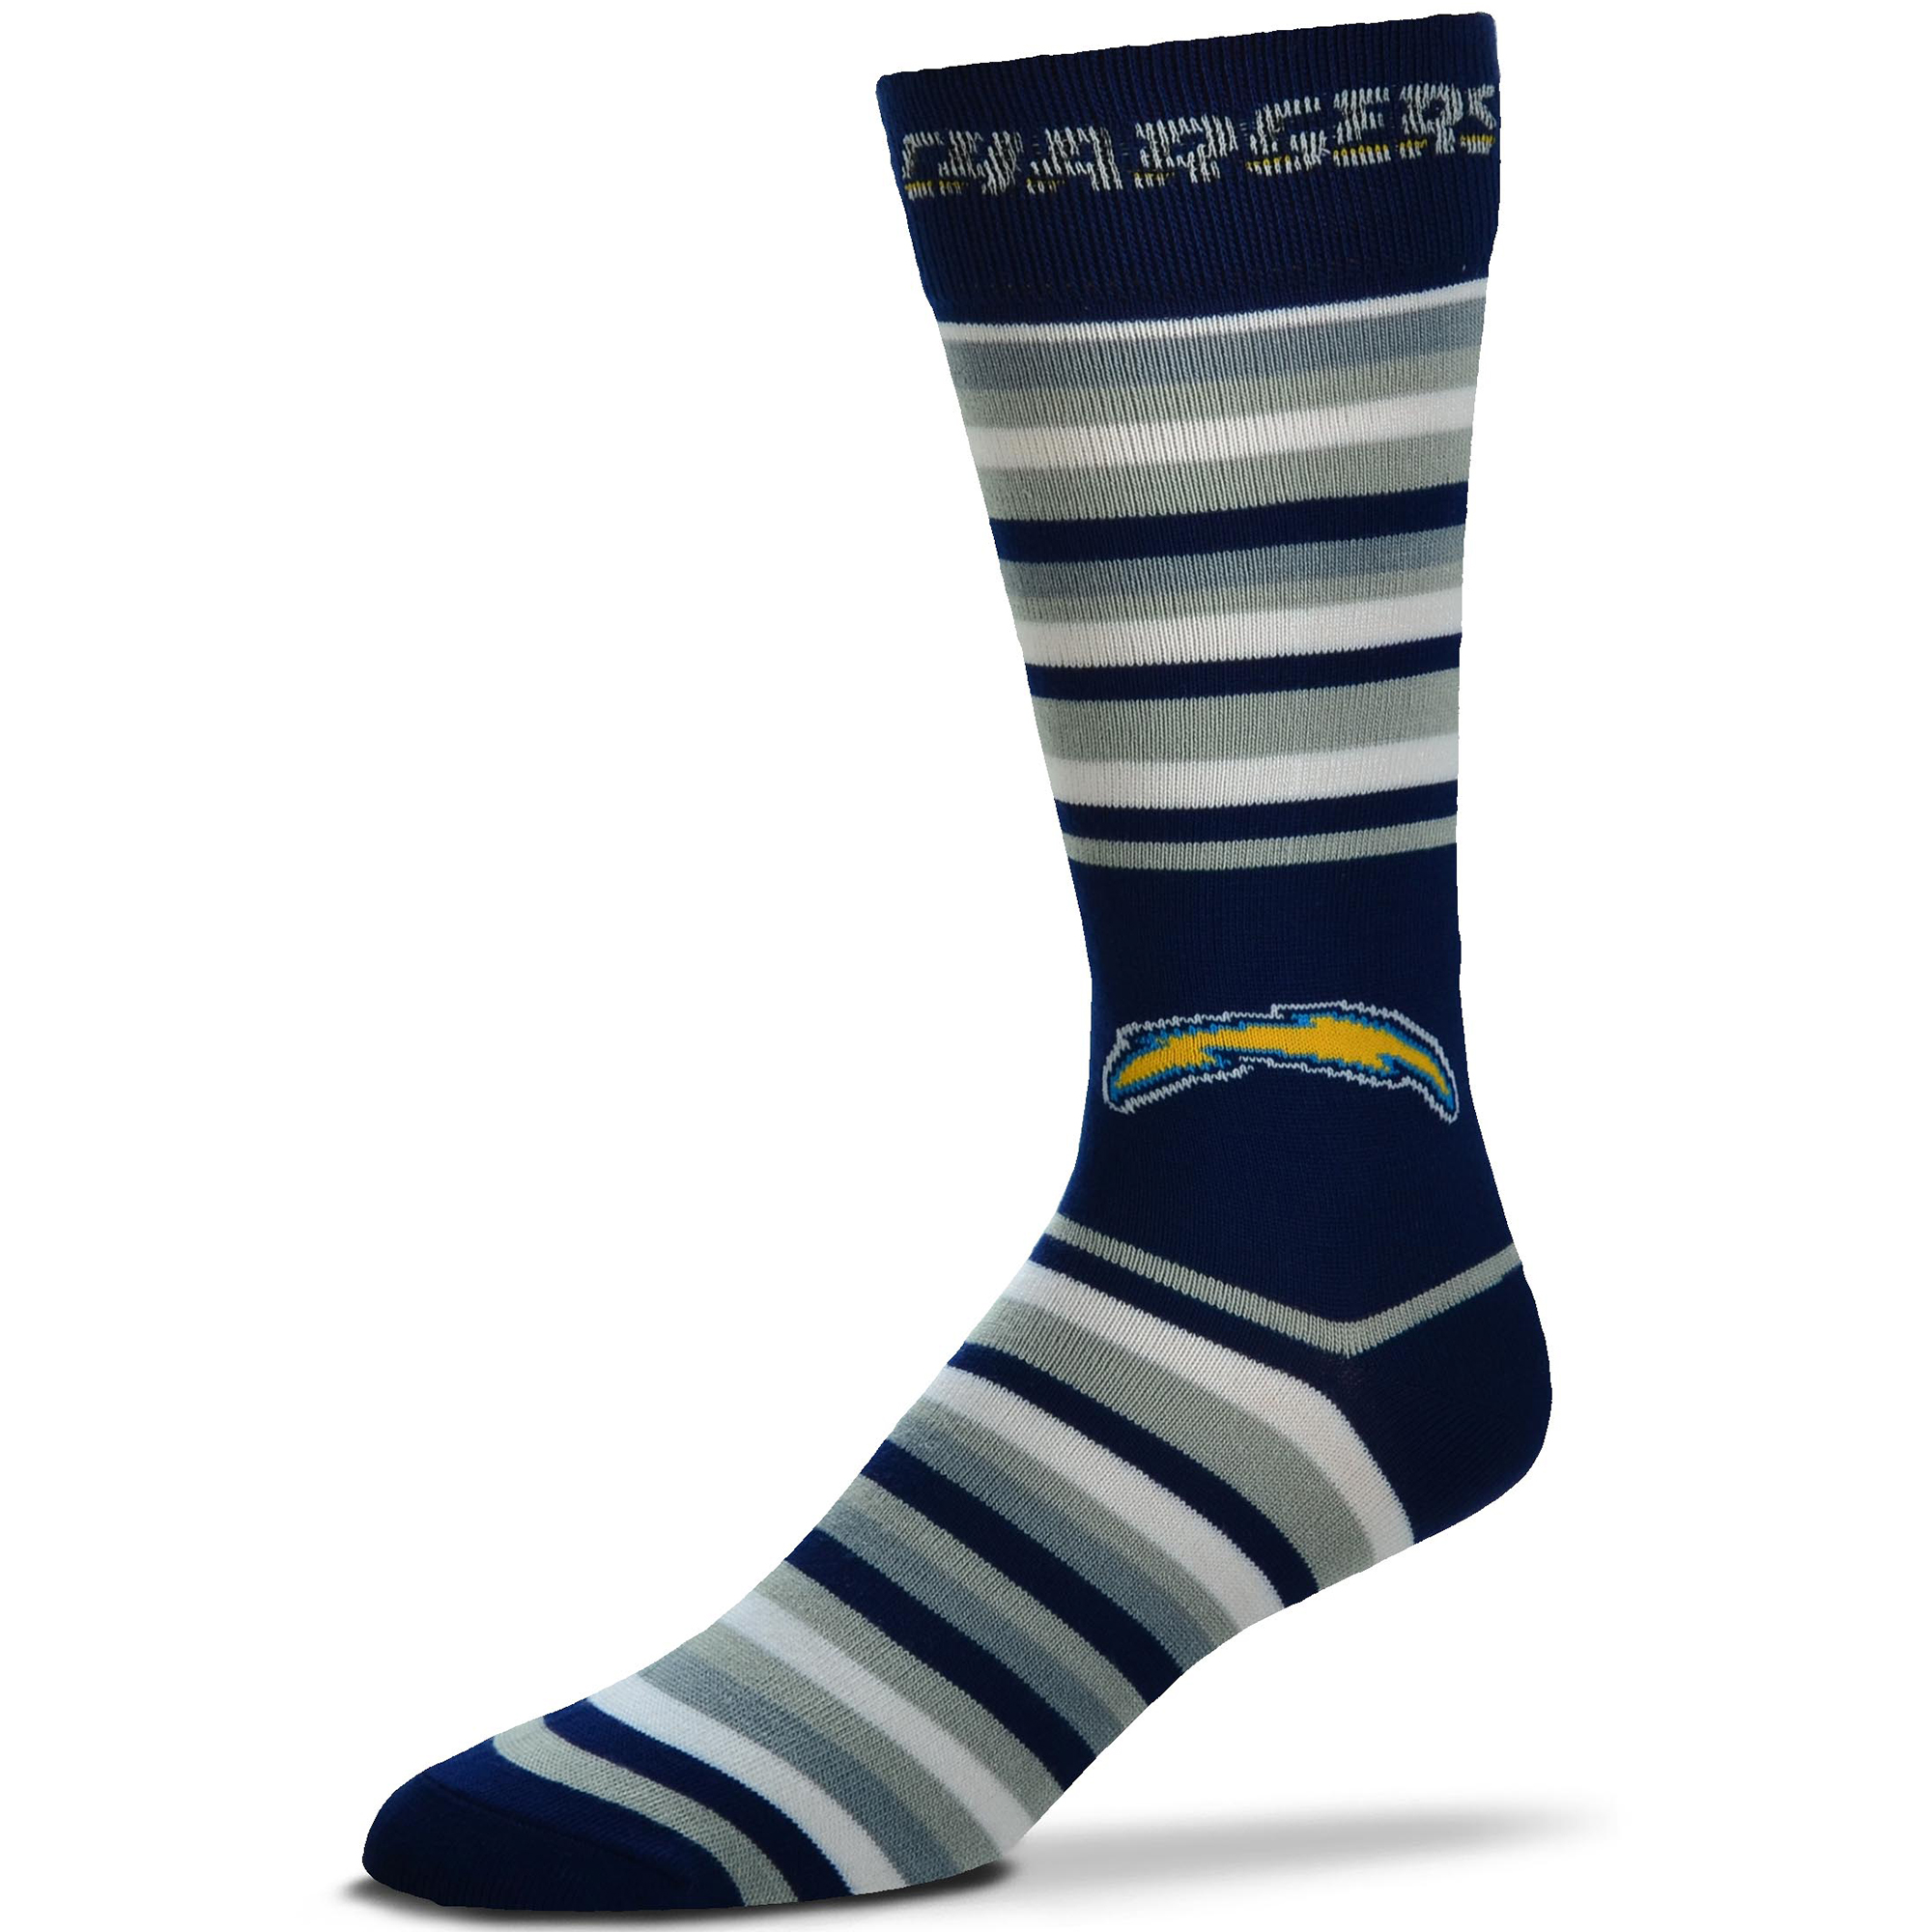 Los Angeles Chargers For Bare Feet The Boss Socks - No Size